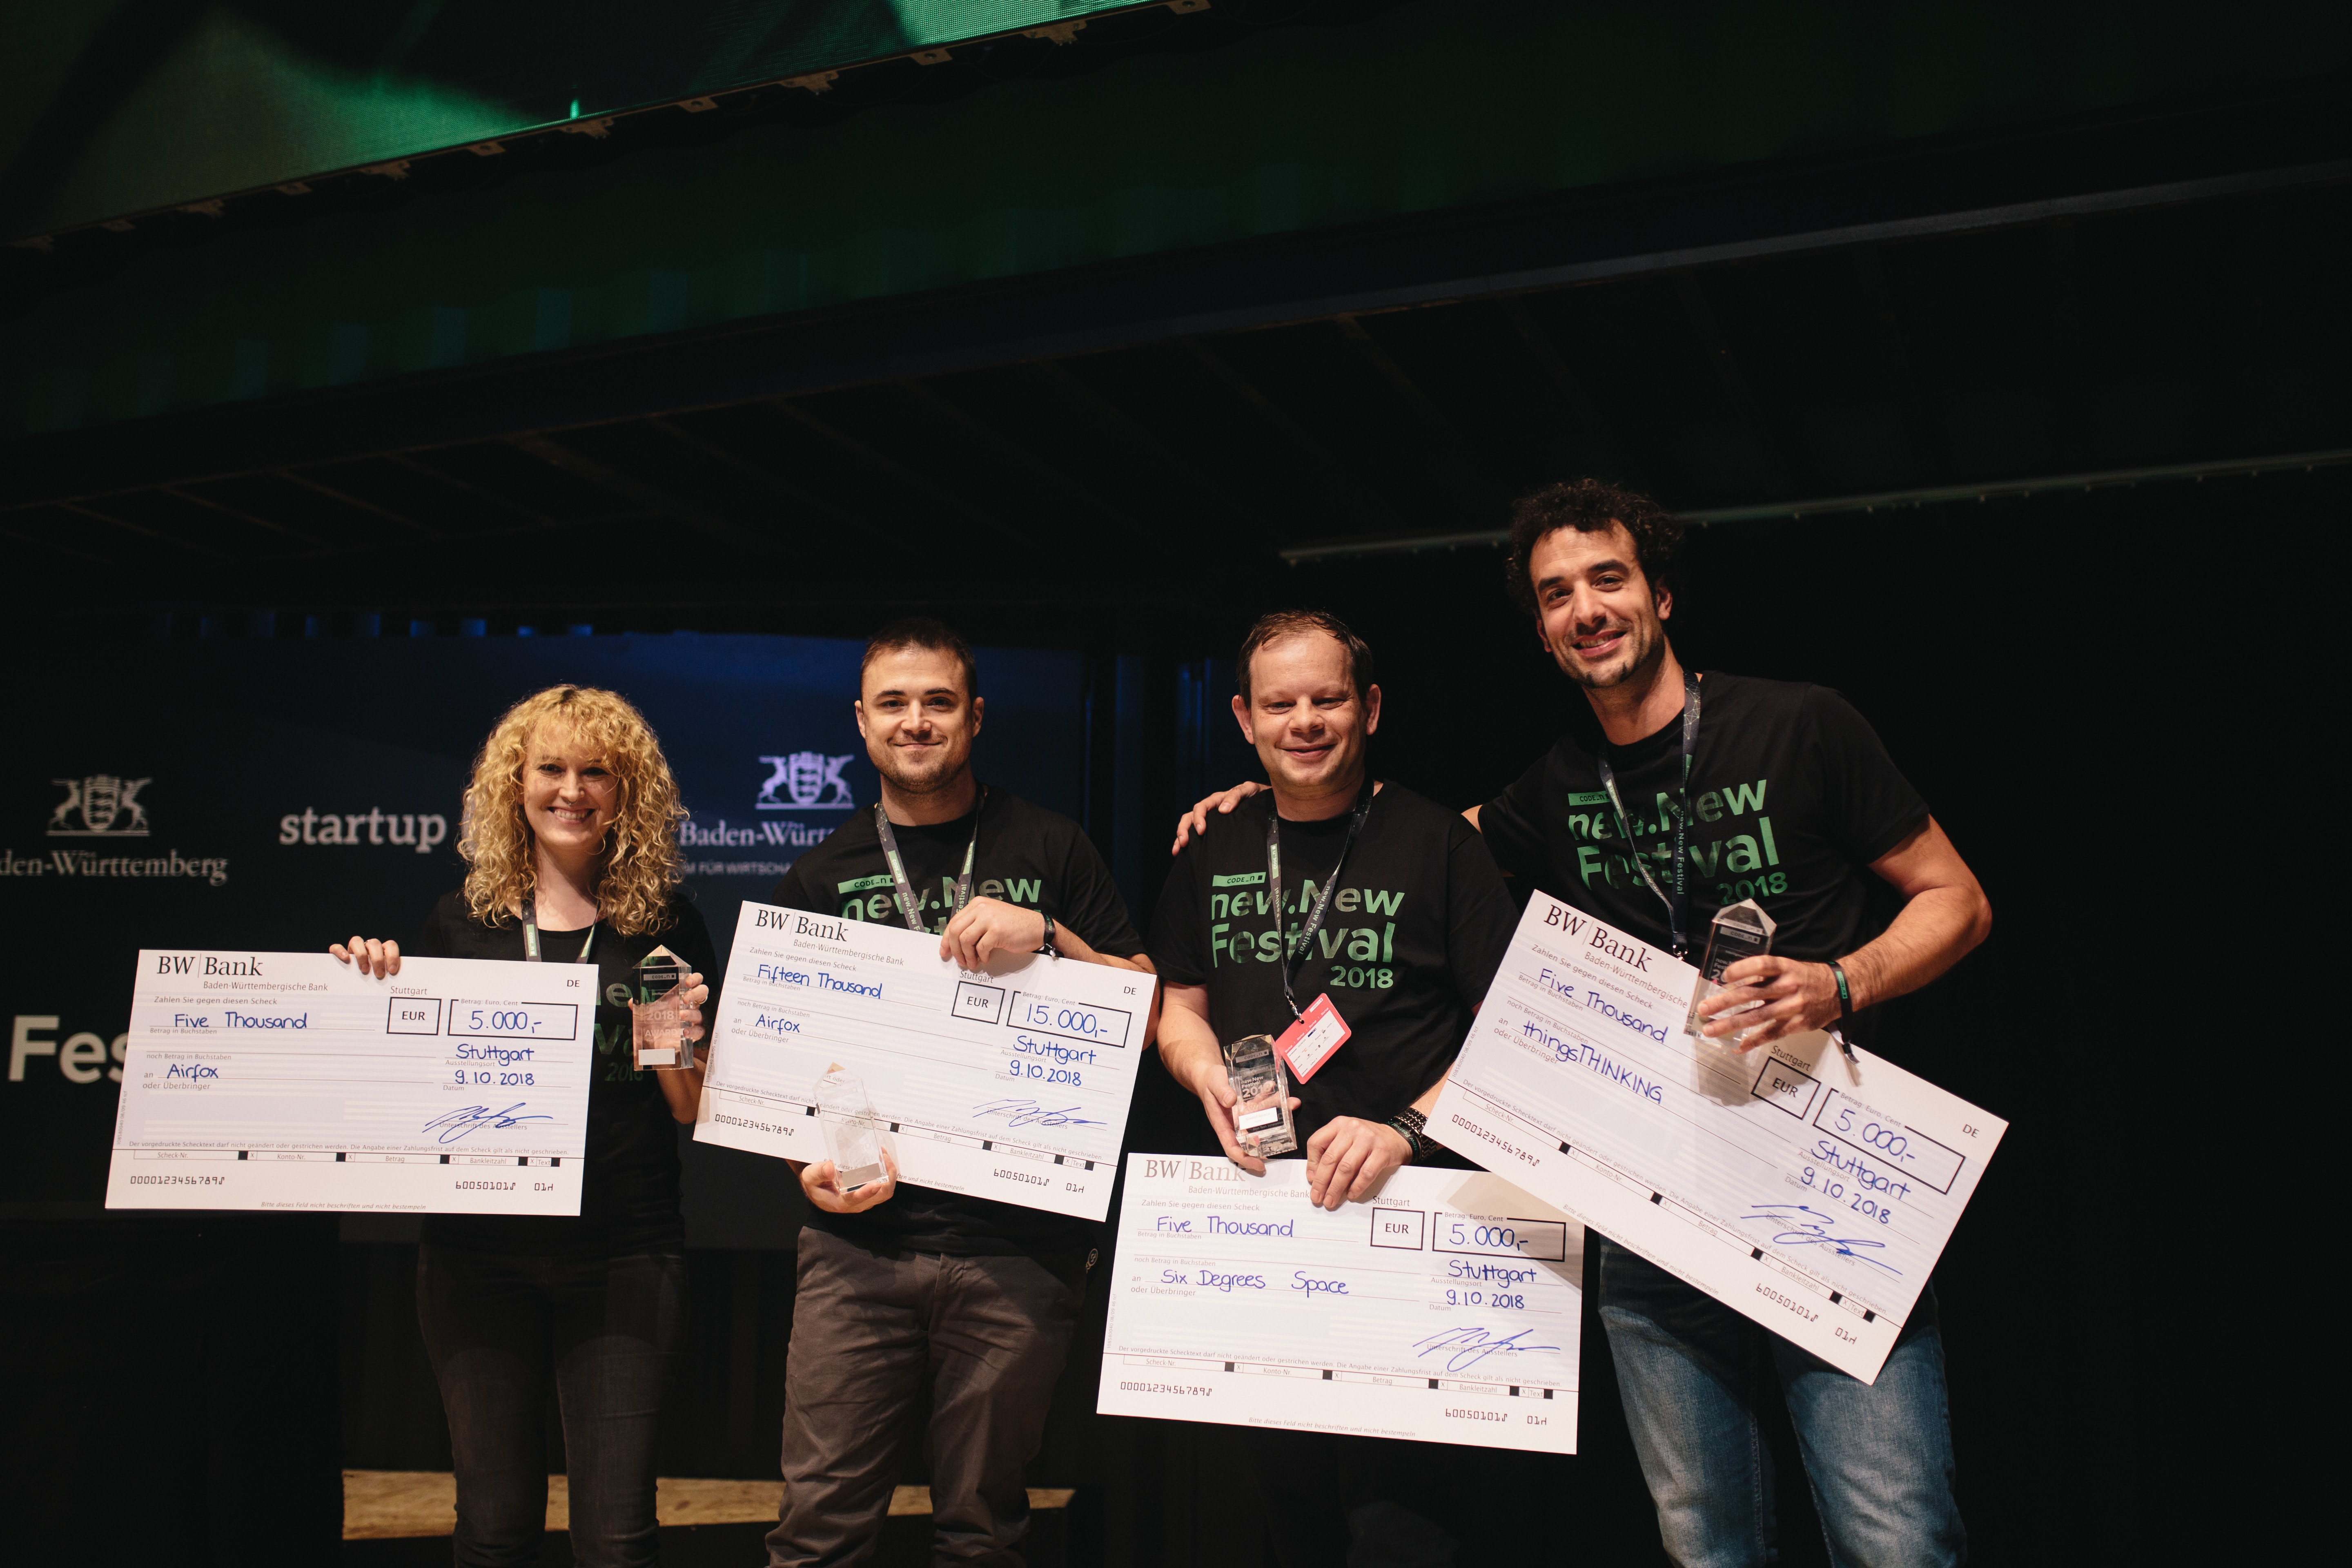 CODE_n new.NewFestival 2018 Winners of Startup CONTEST